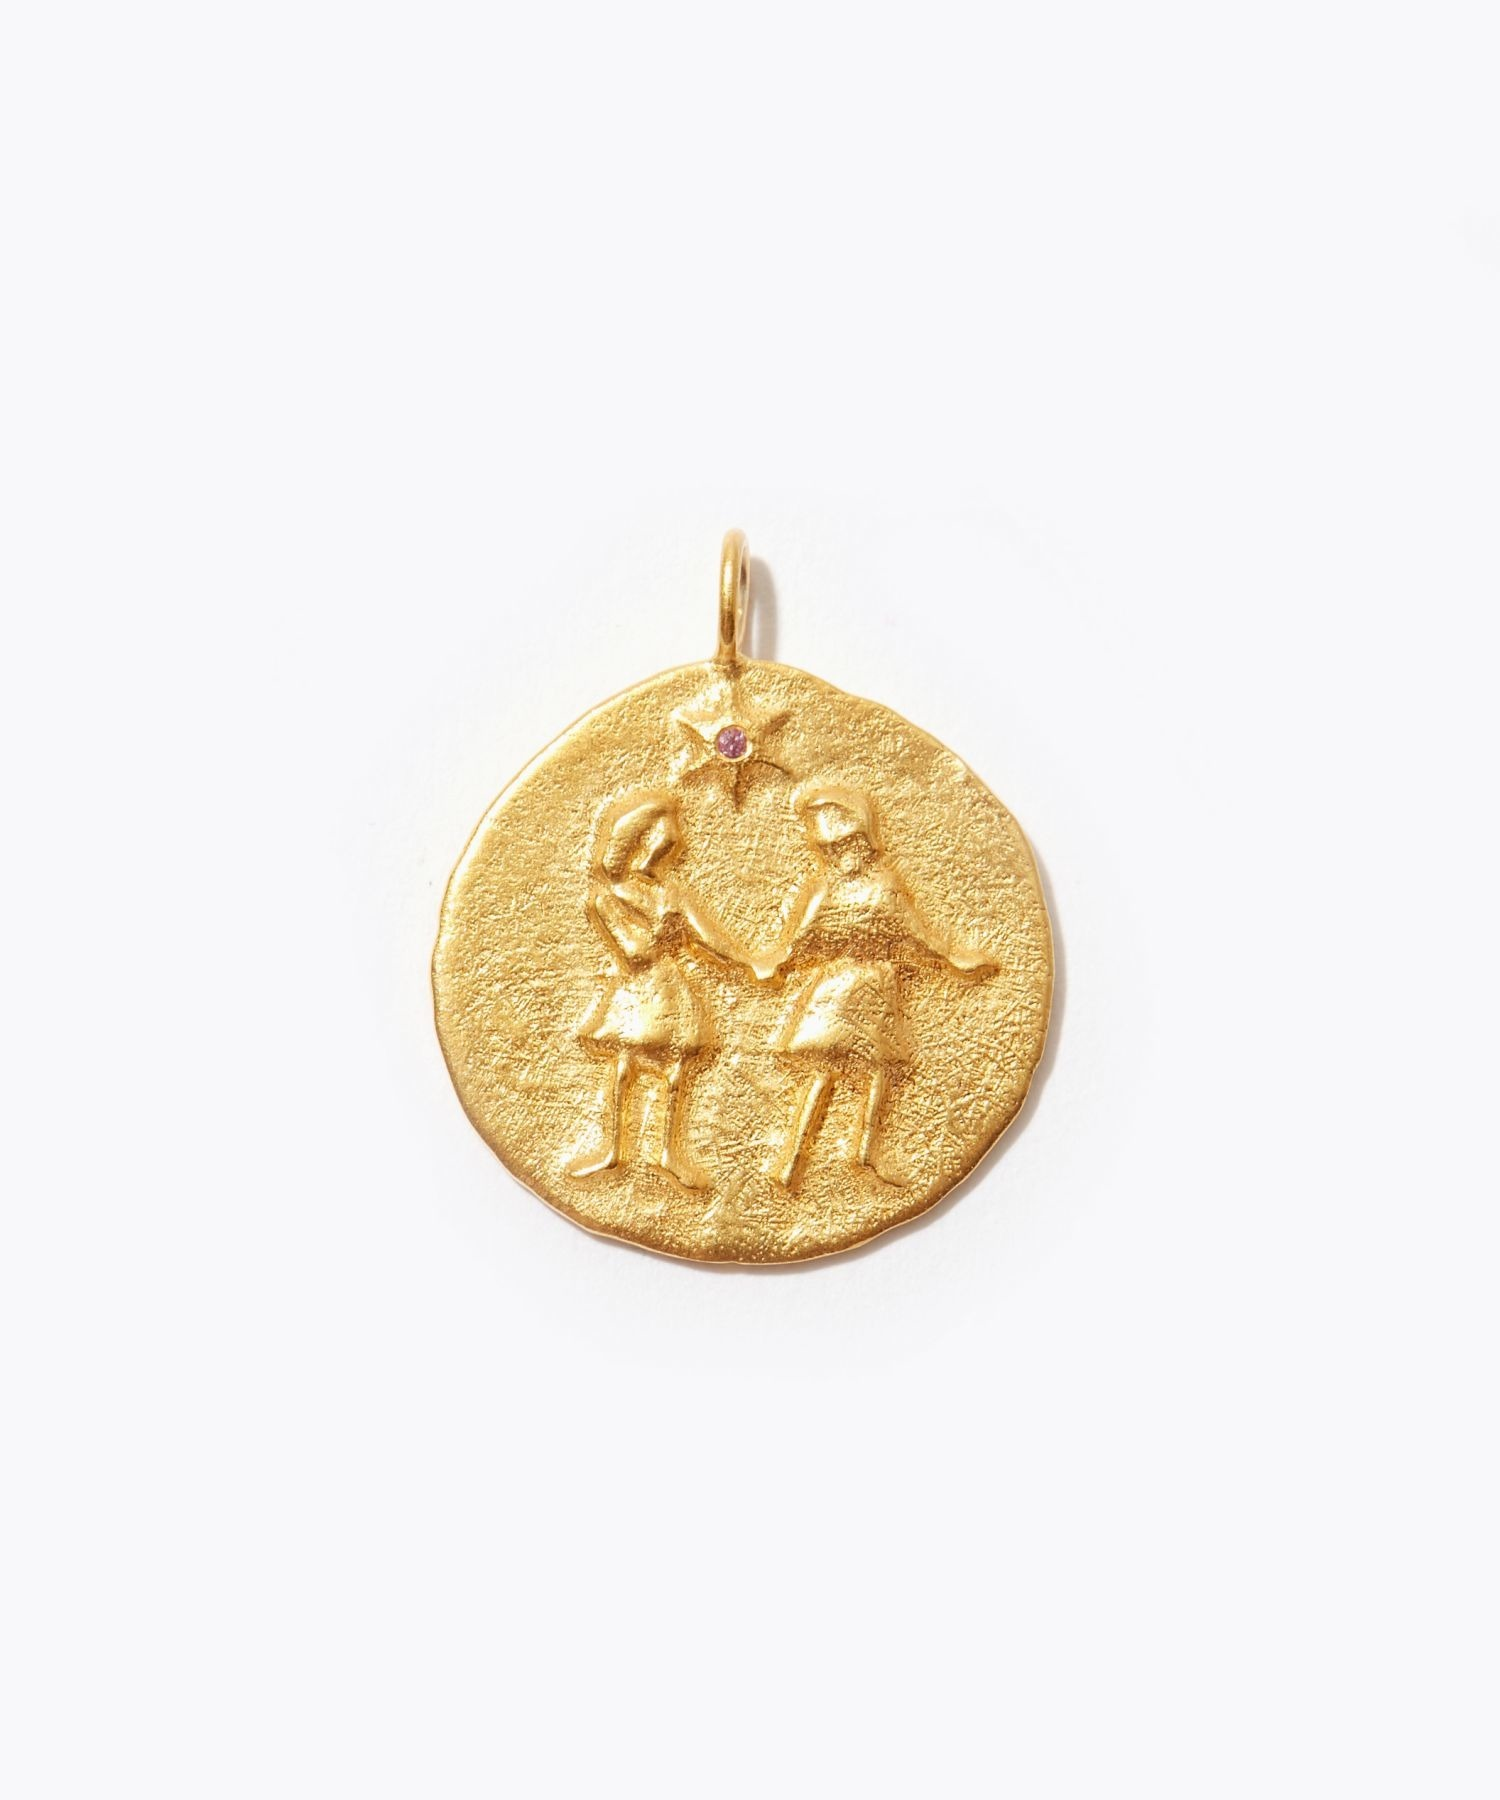 [constellation] Gemini big coin charm